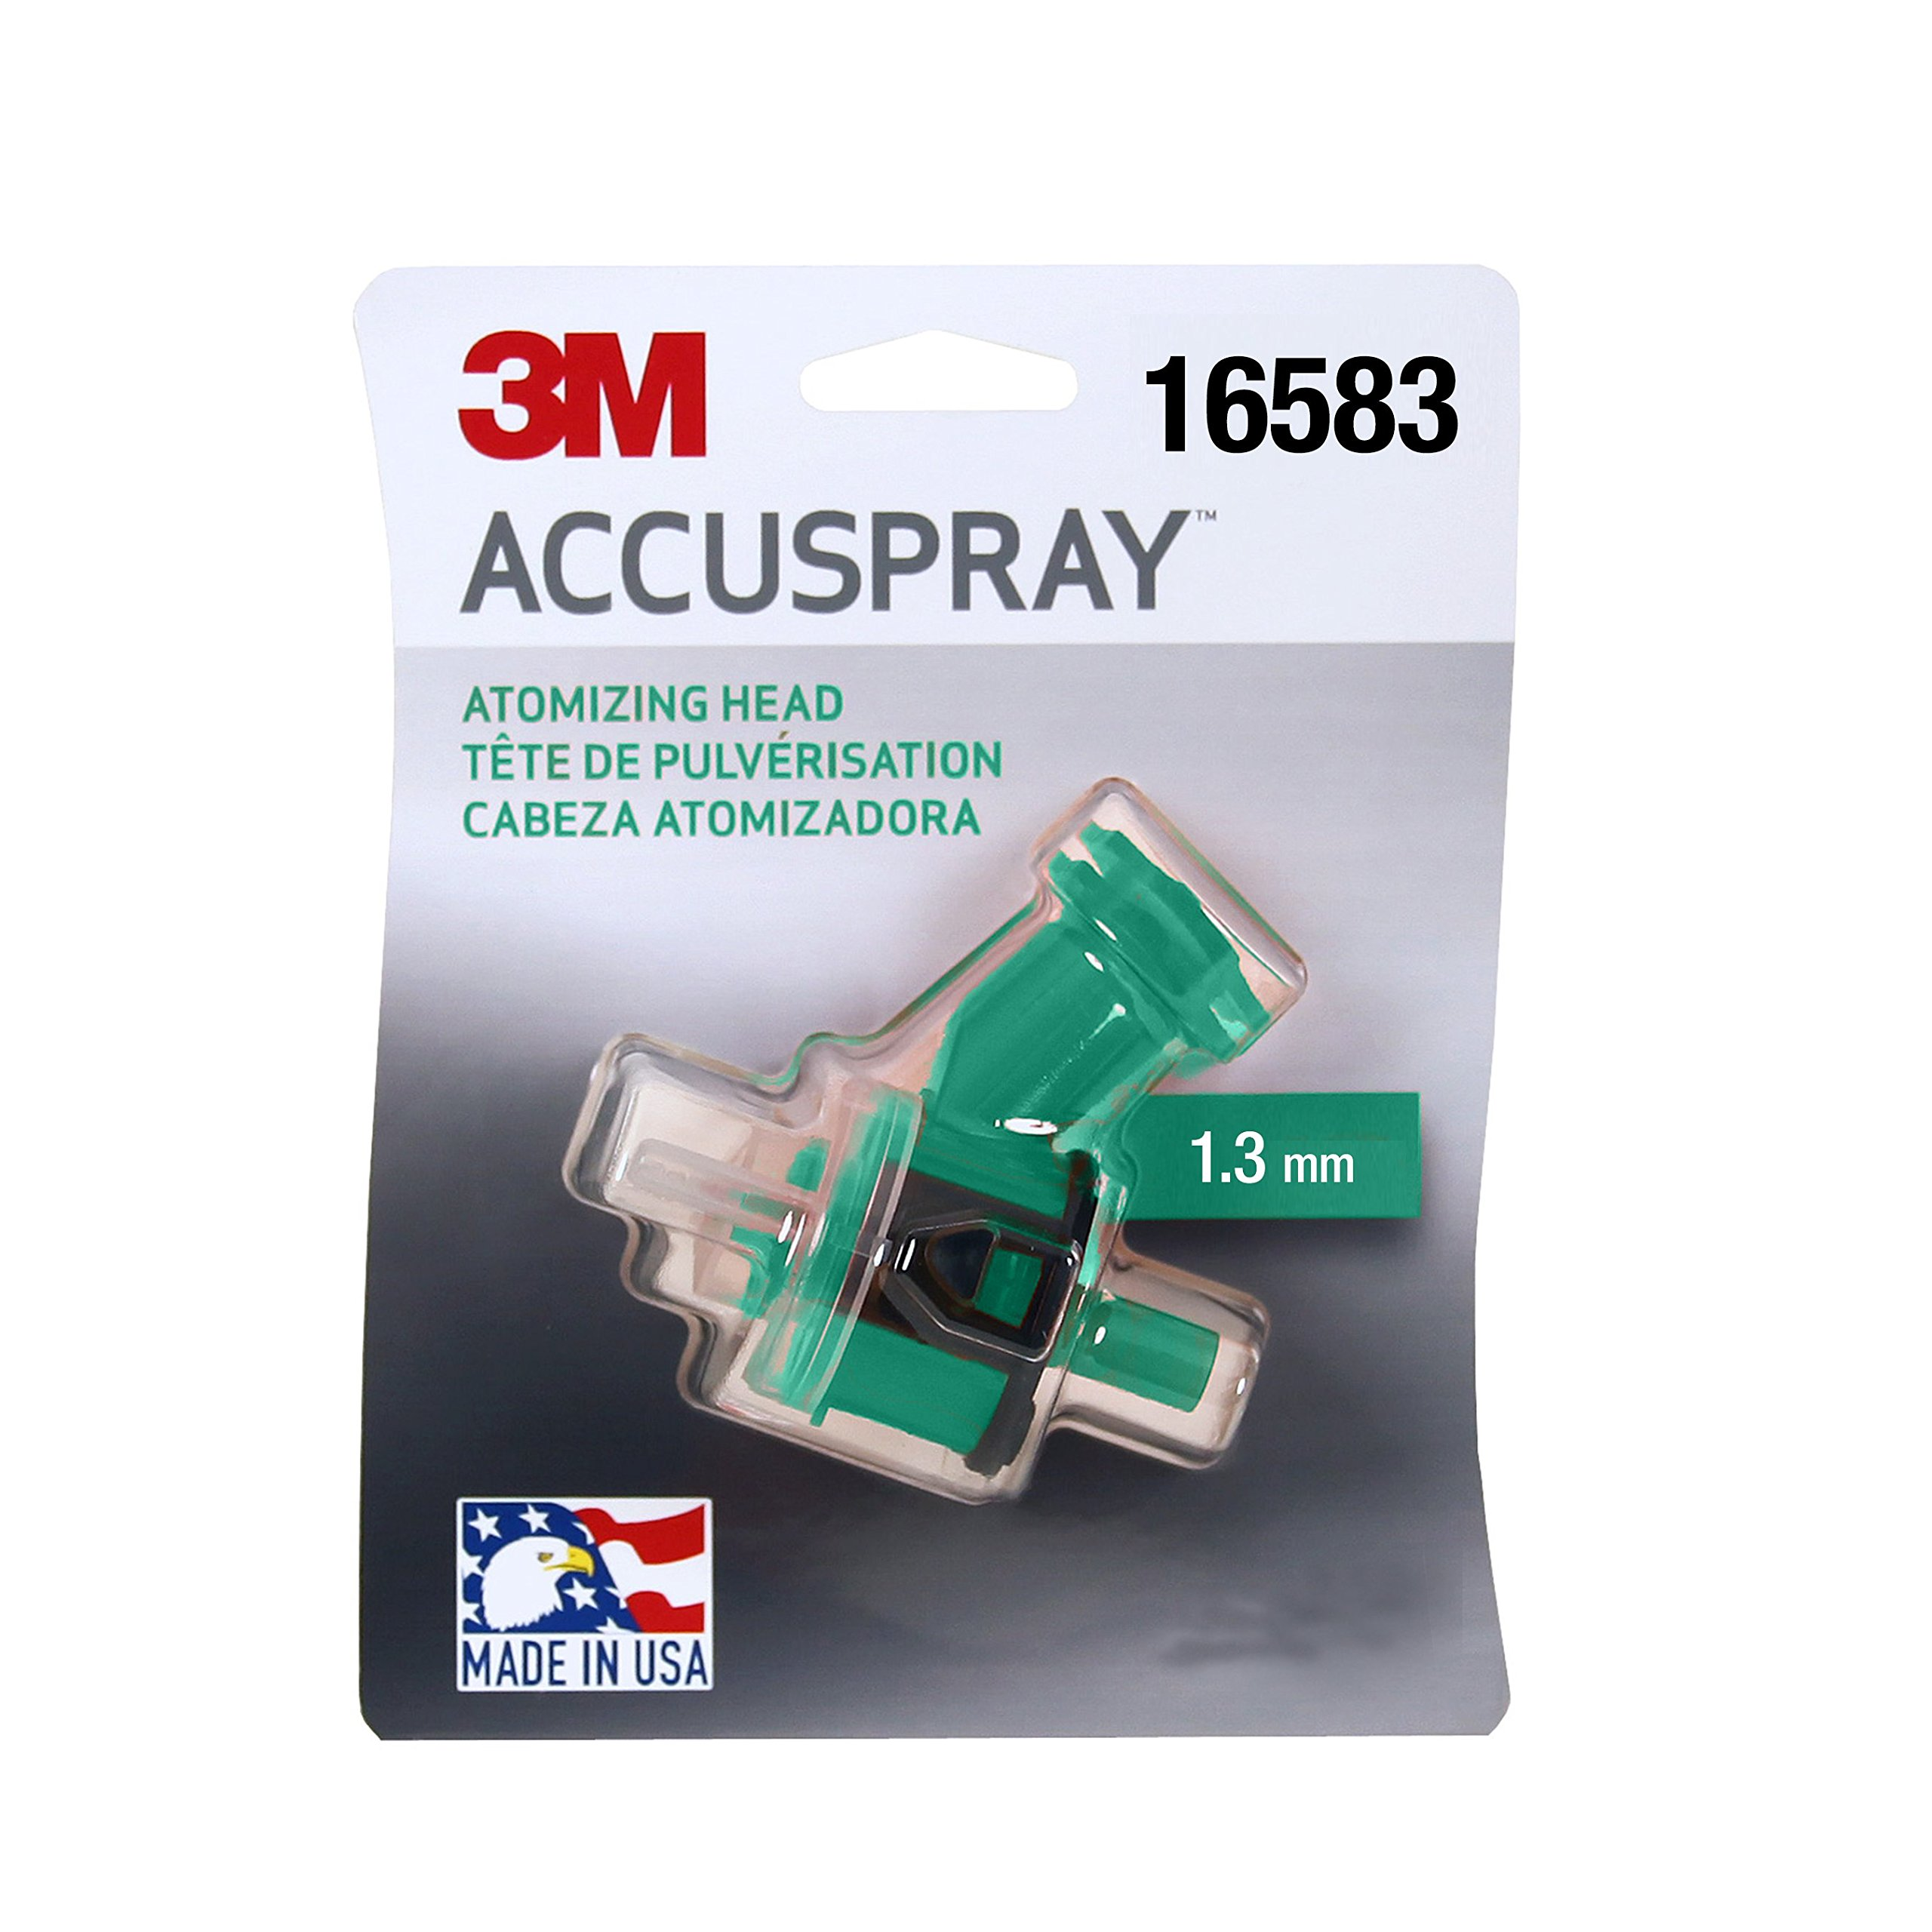 Accuspray 16583-case Atomizing Head (Green, 1.3 mm, 1 atomizing heads per each, 10 each per case)